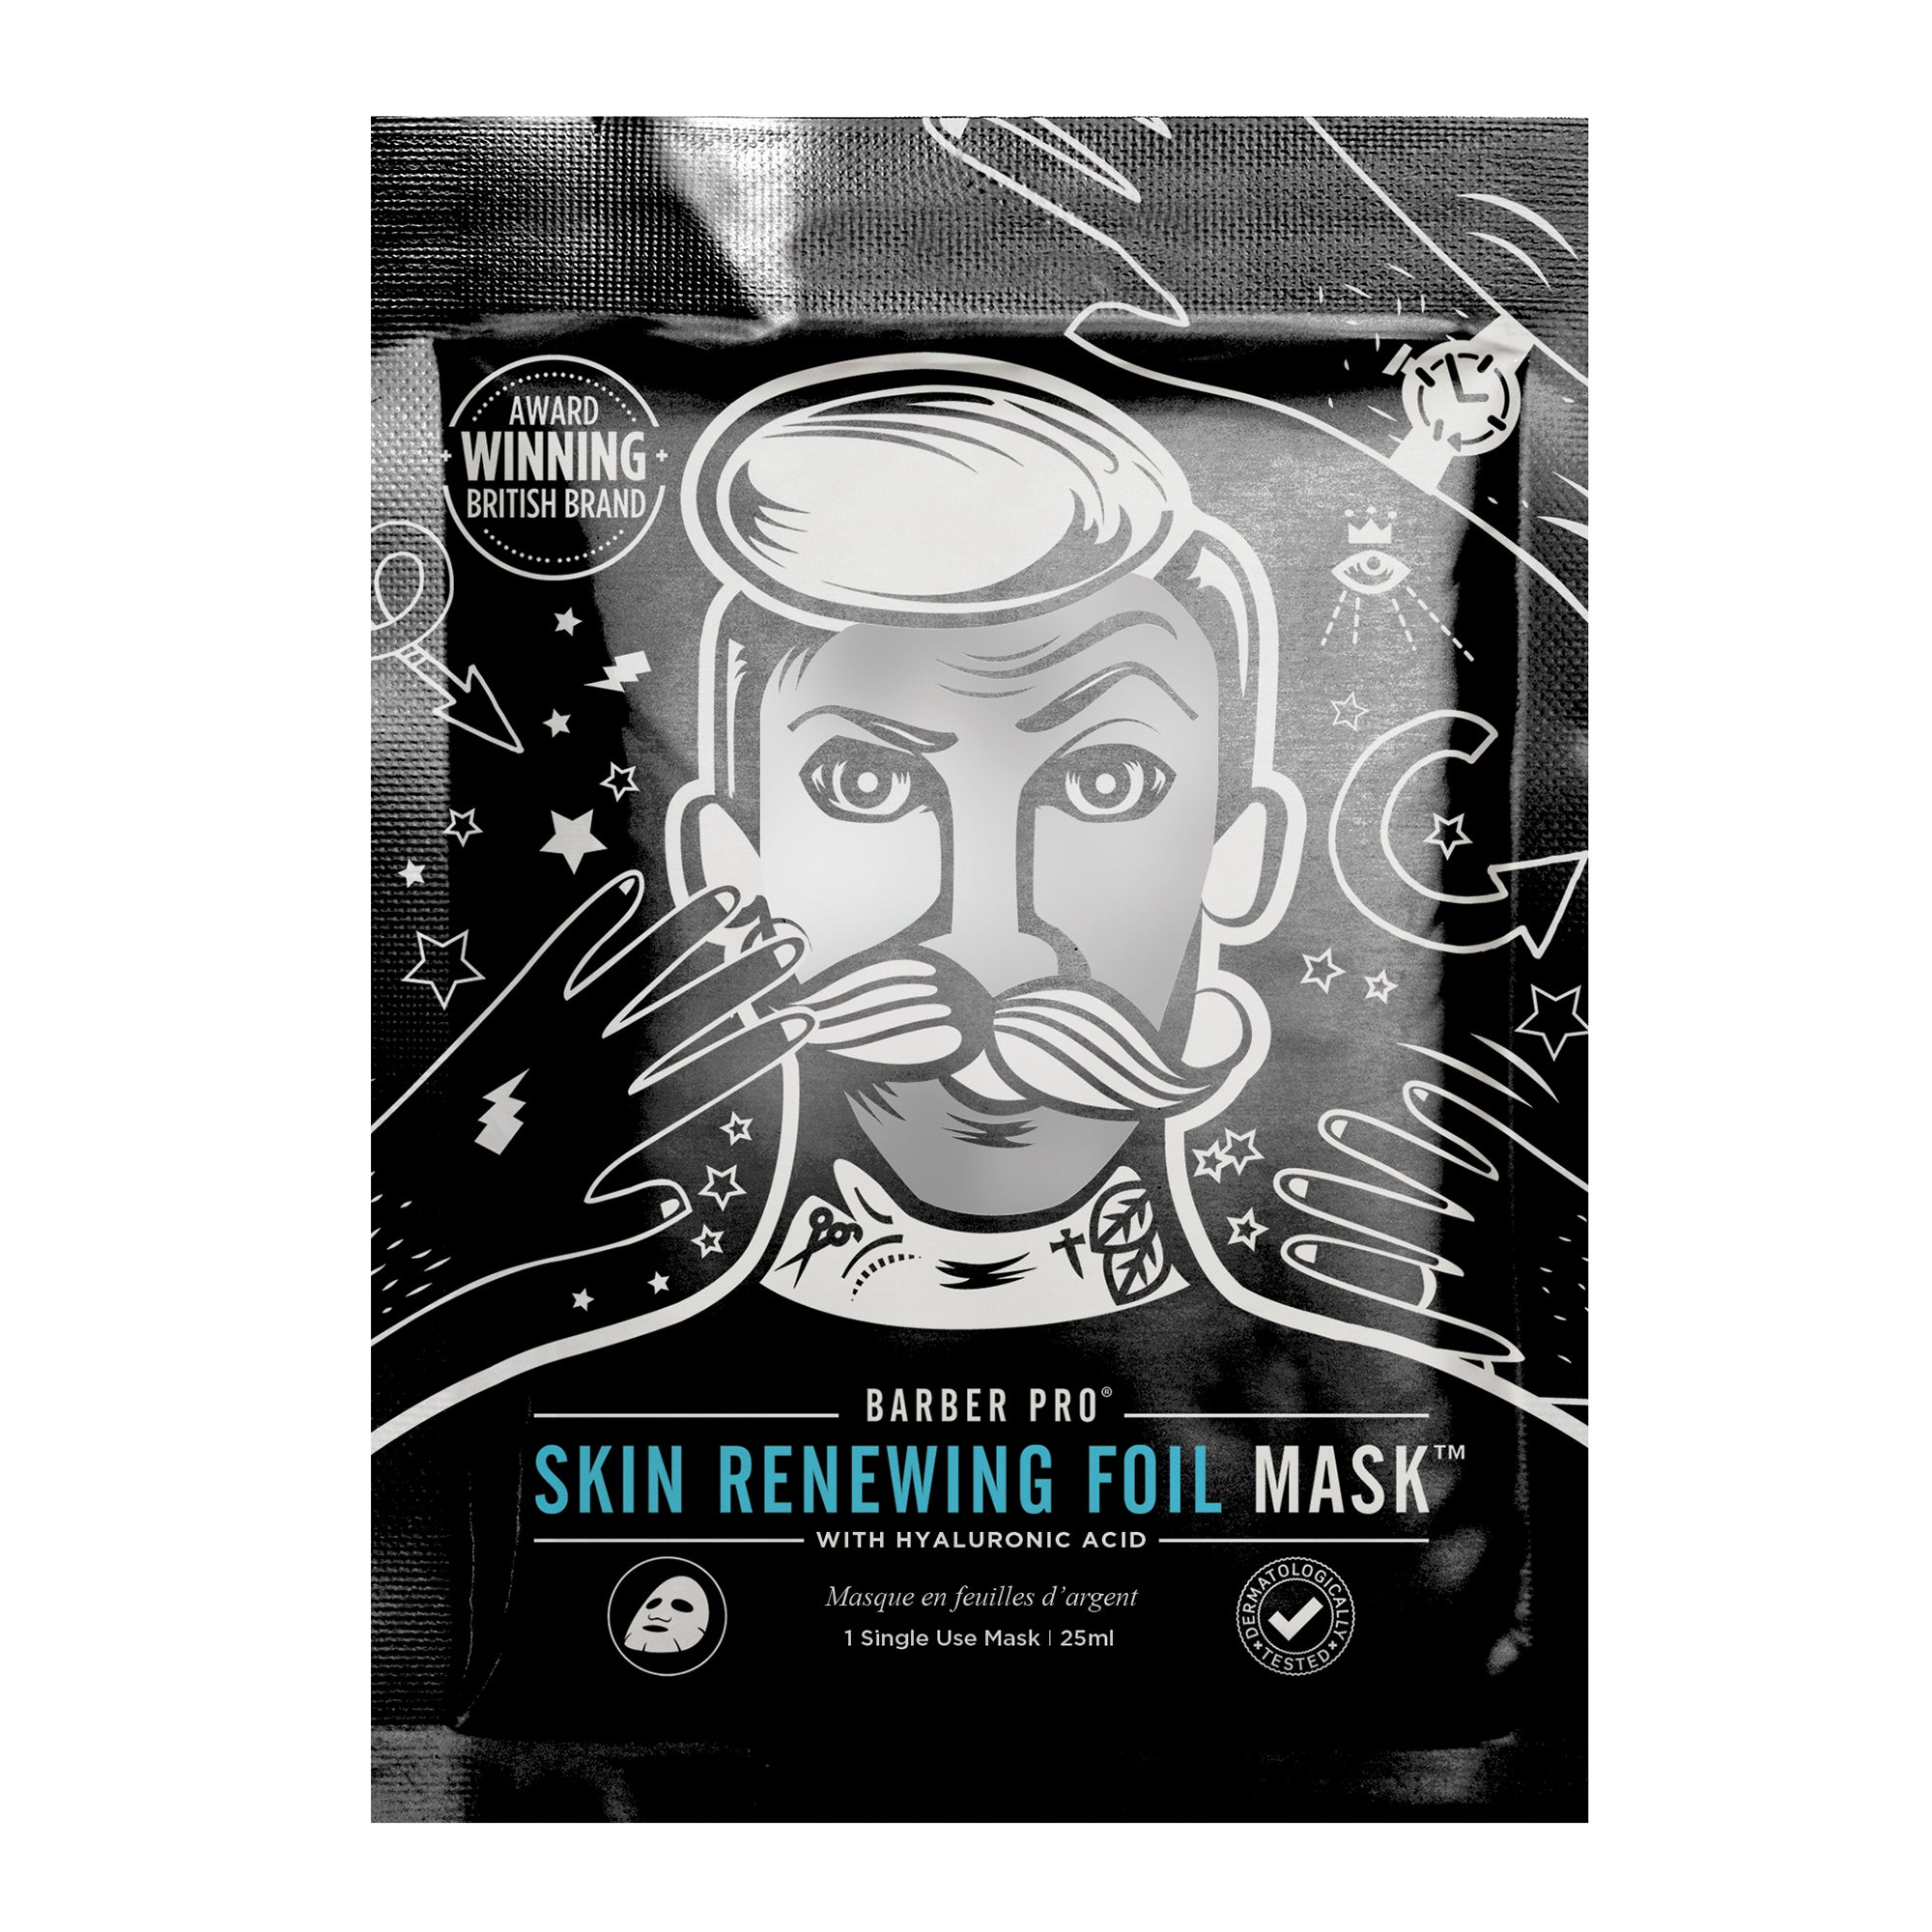 BARBER PRO SKIN RENEWING FOIL Mask with Hyaluronic Acid & Q10